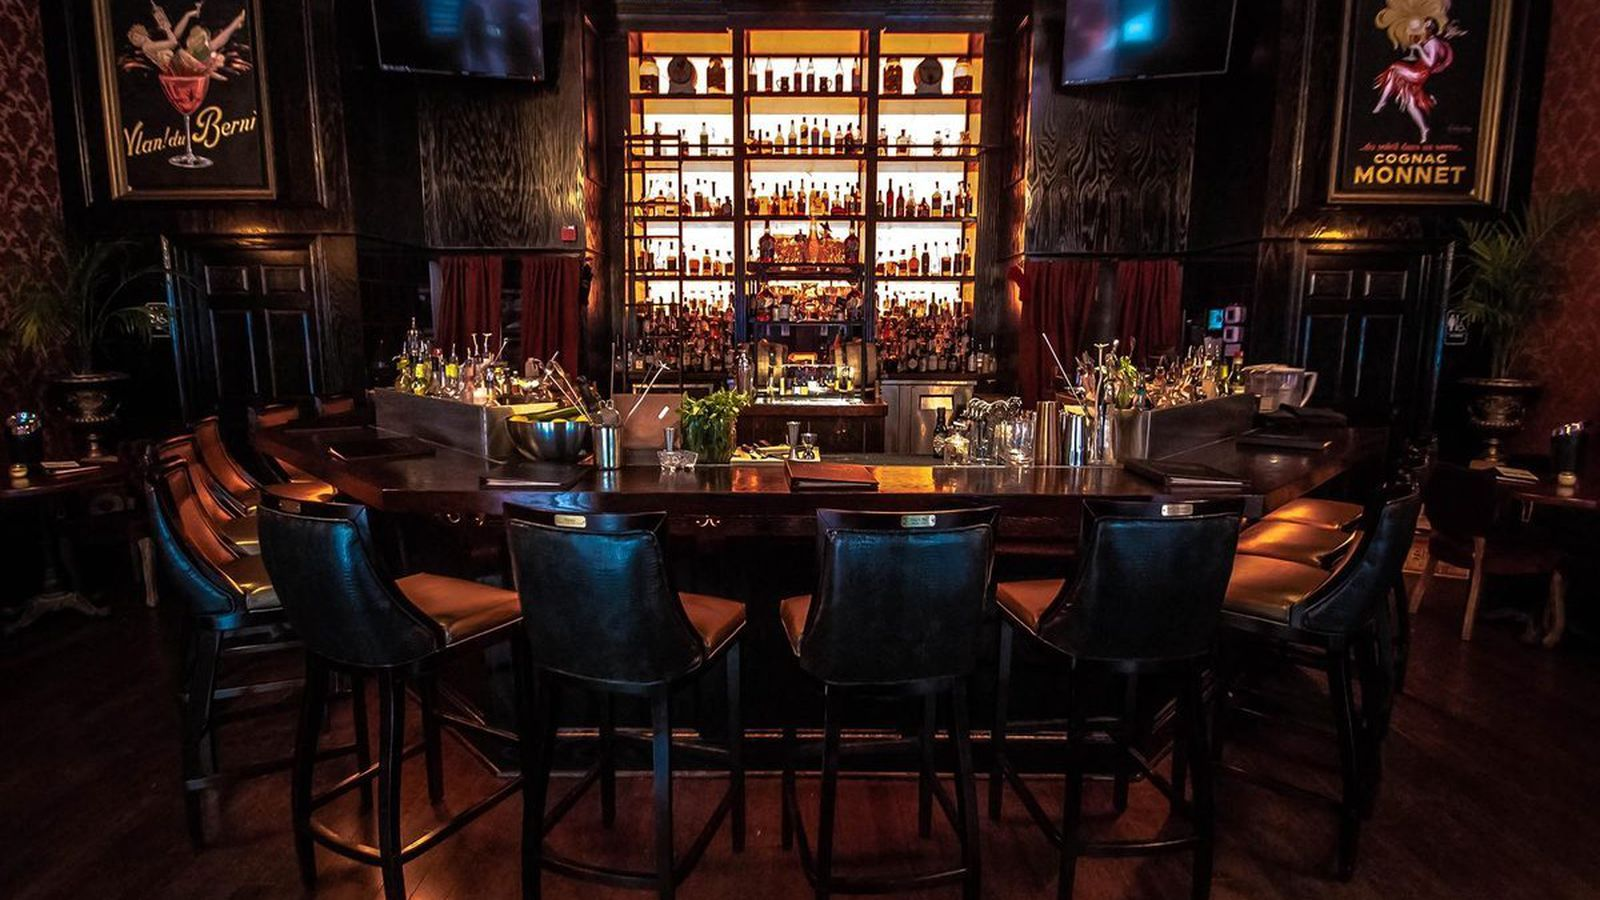 Long live parliament lucky campbell 39 s new cocktail bar - Image of bar ...